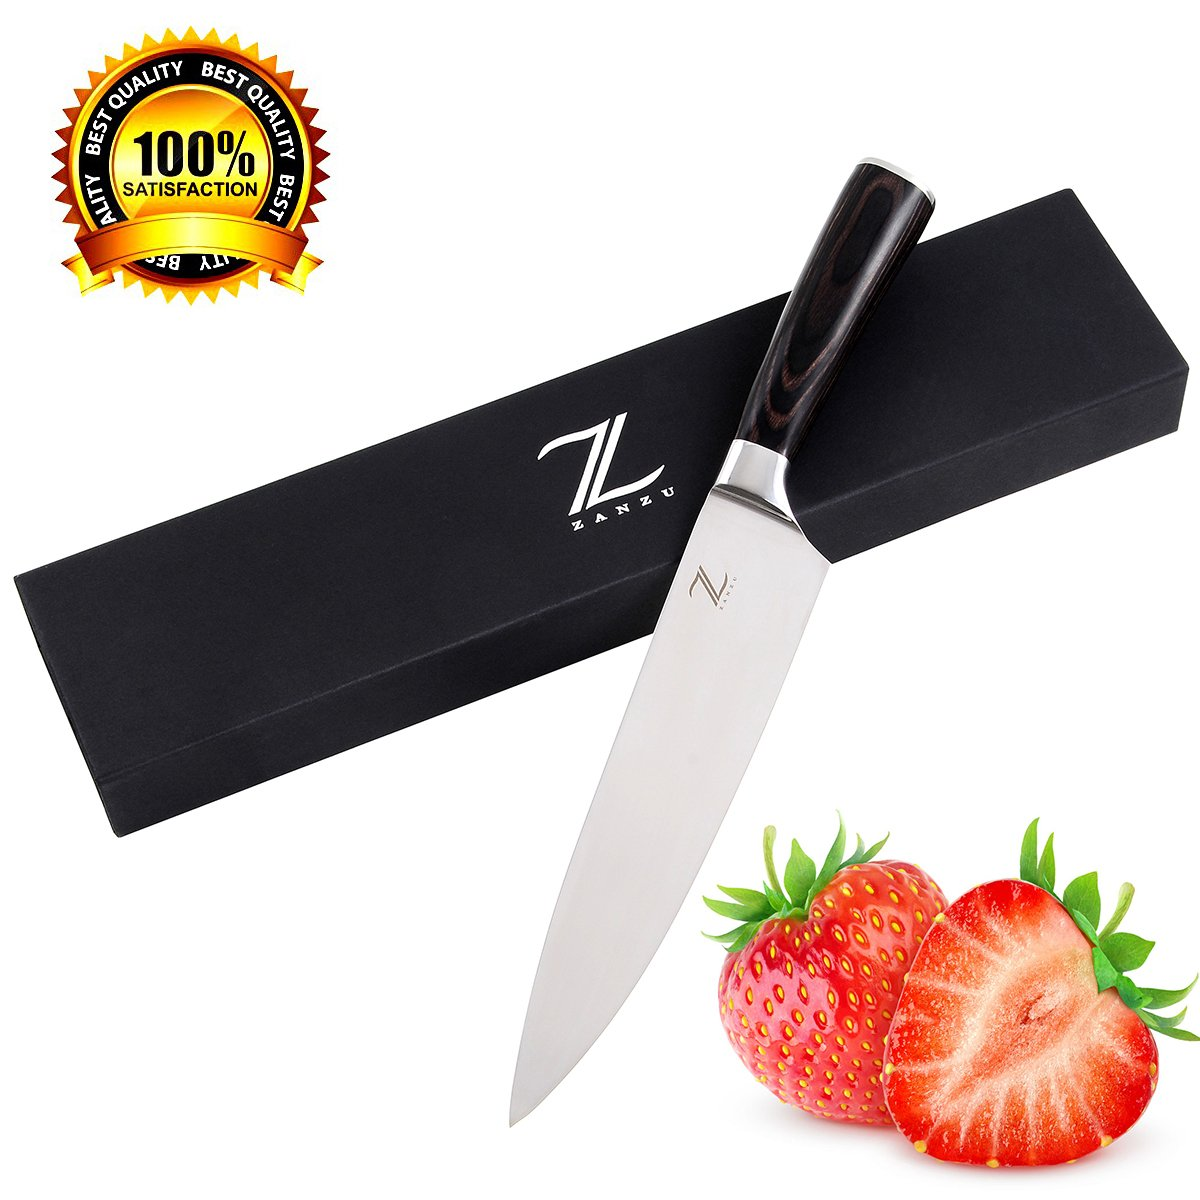 ZANZU Kitchen Knife Chef's Knife 8 Inches Japanese Stainless Steel Chef Knife High Carbon Cooking Professional Sharp Knives With Ergonomic Handle